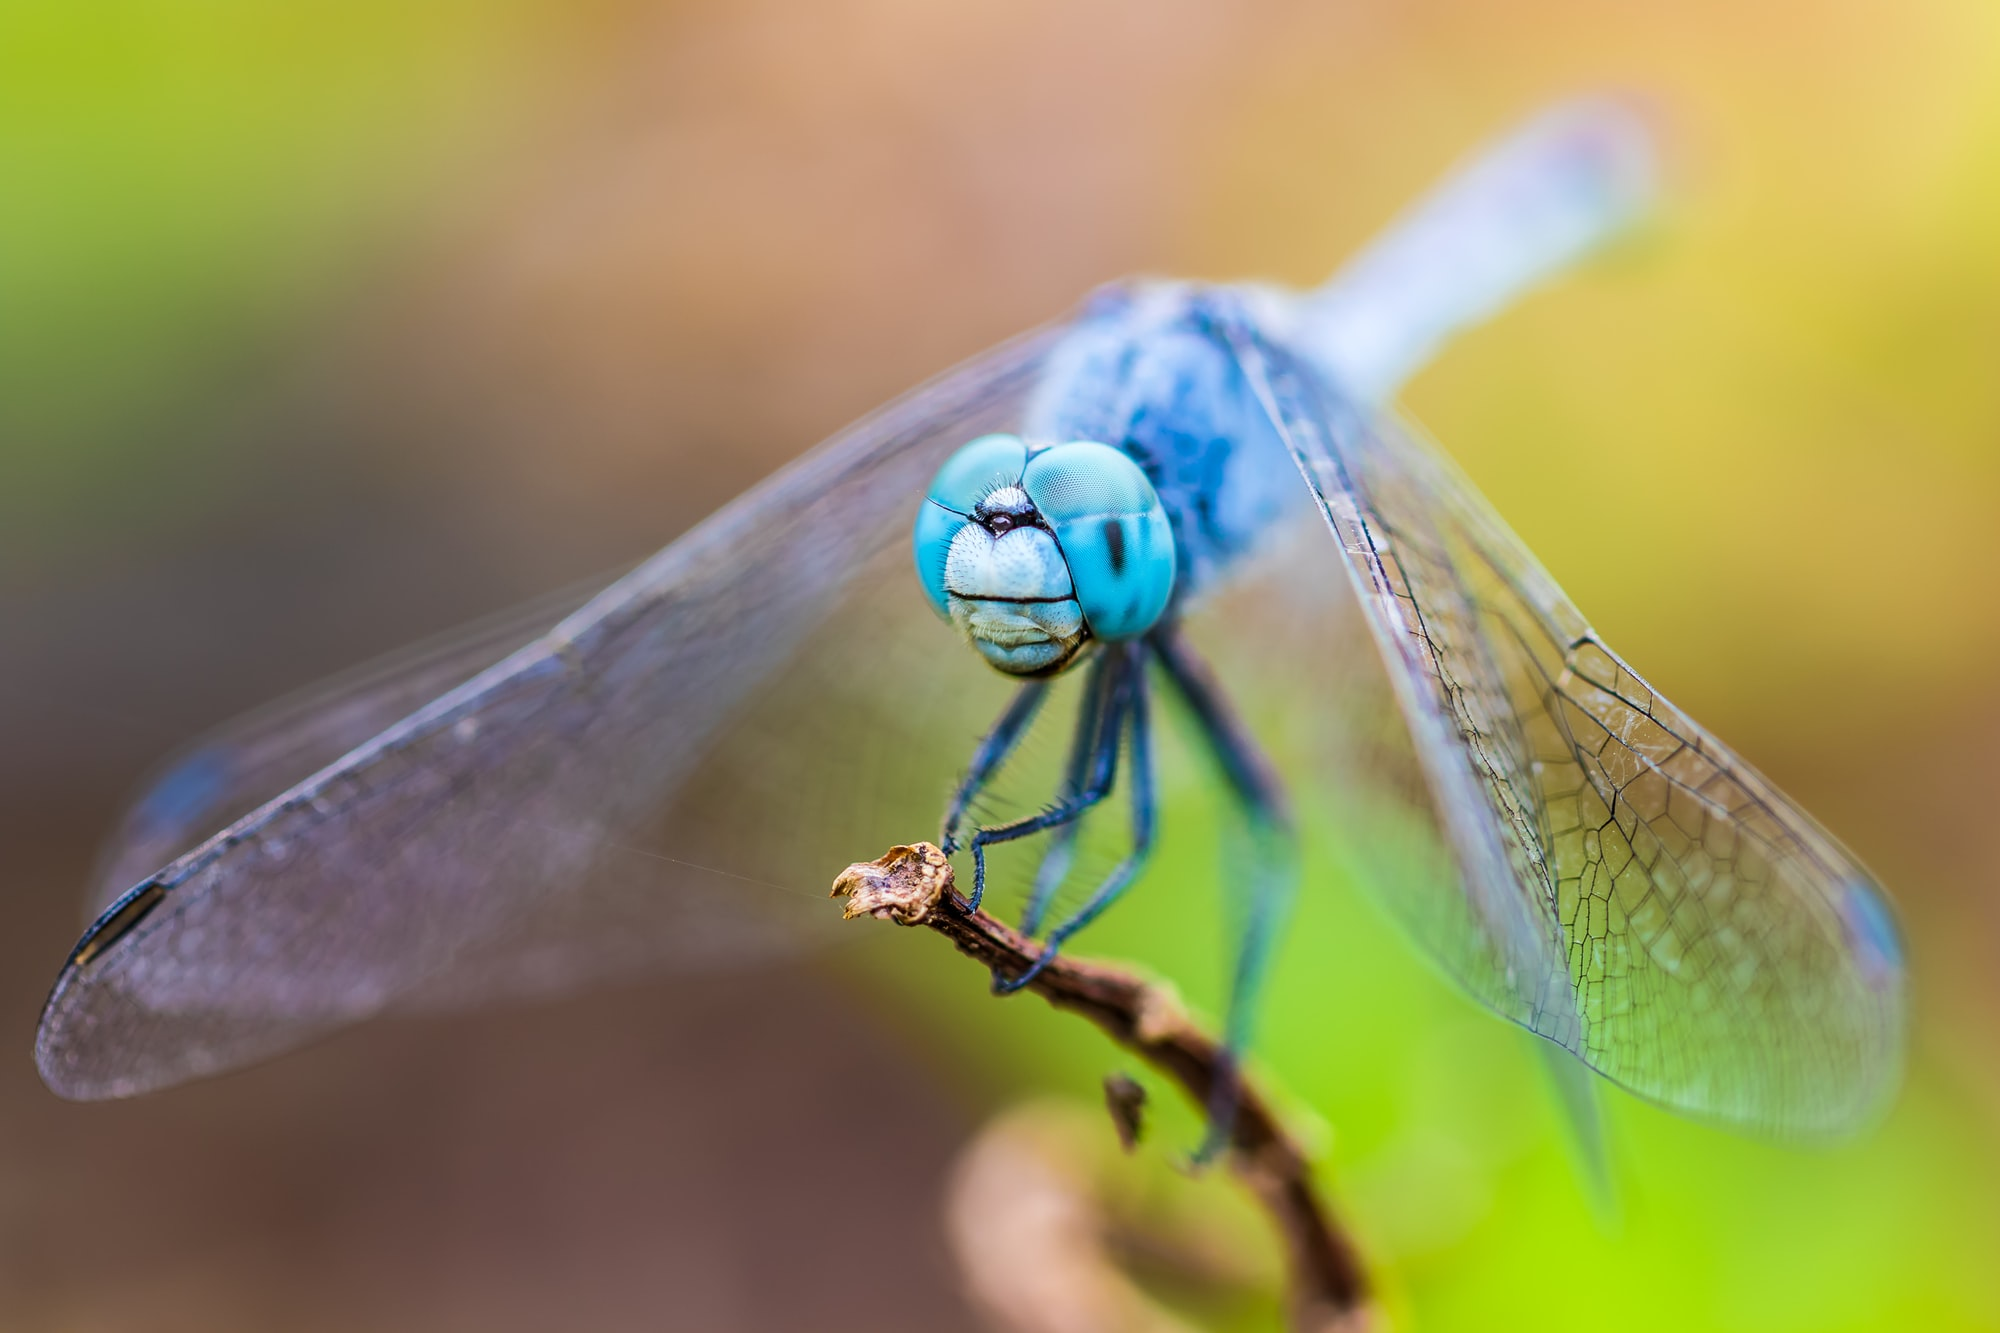 This was my first macro shot of the dragonfly With my new 7d mark ii using a 100mm f2.8 IS.